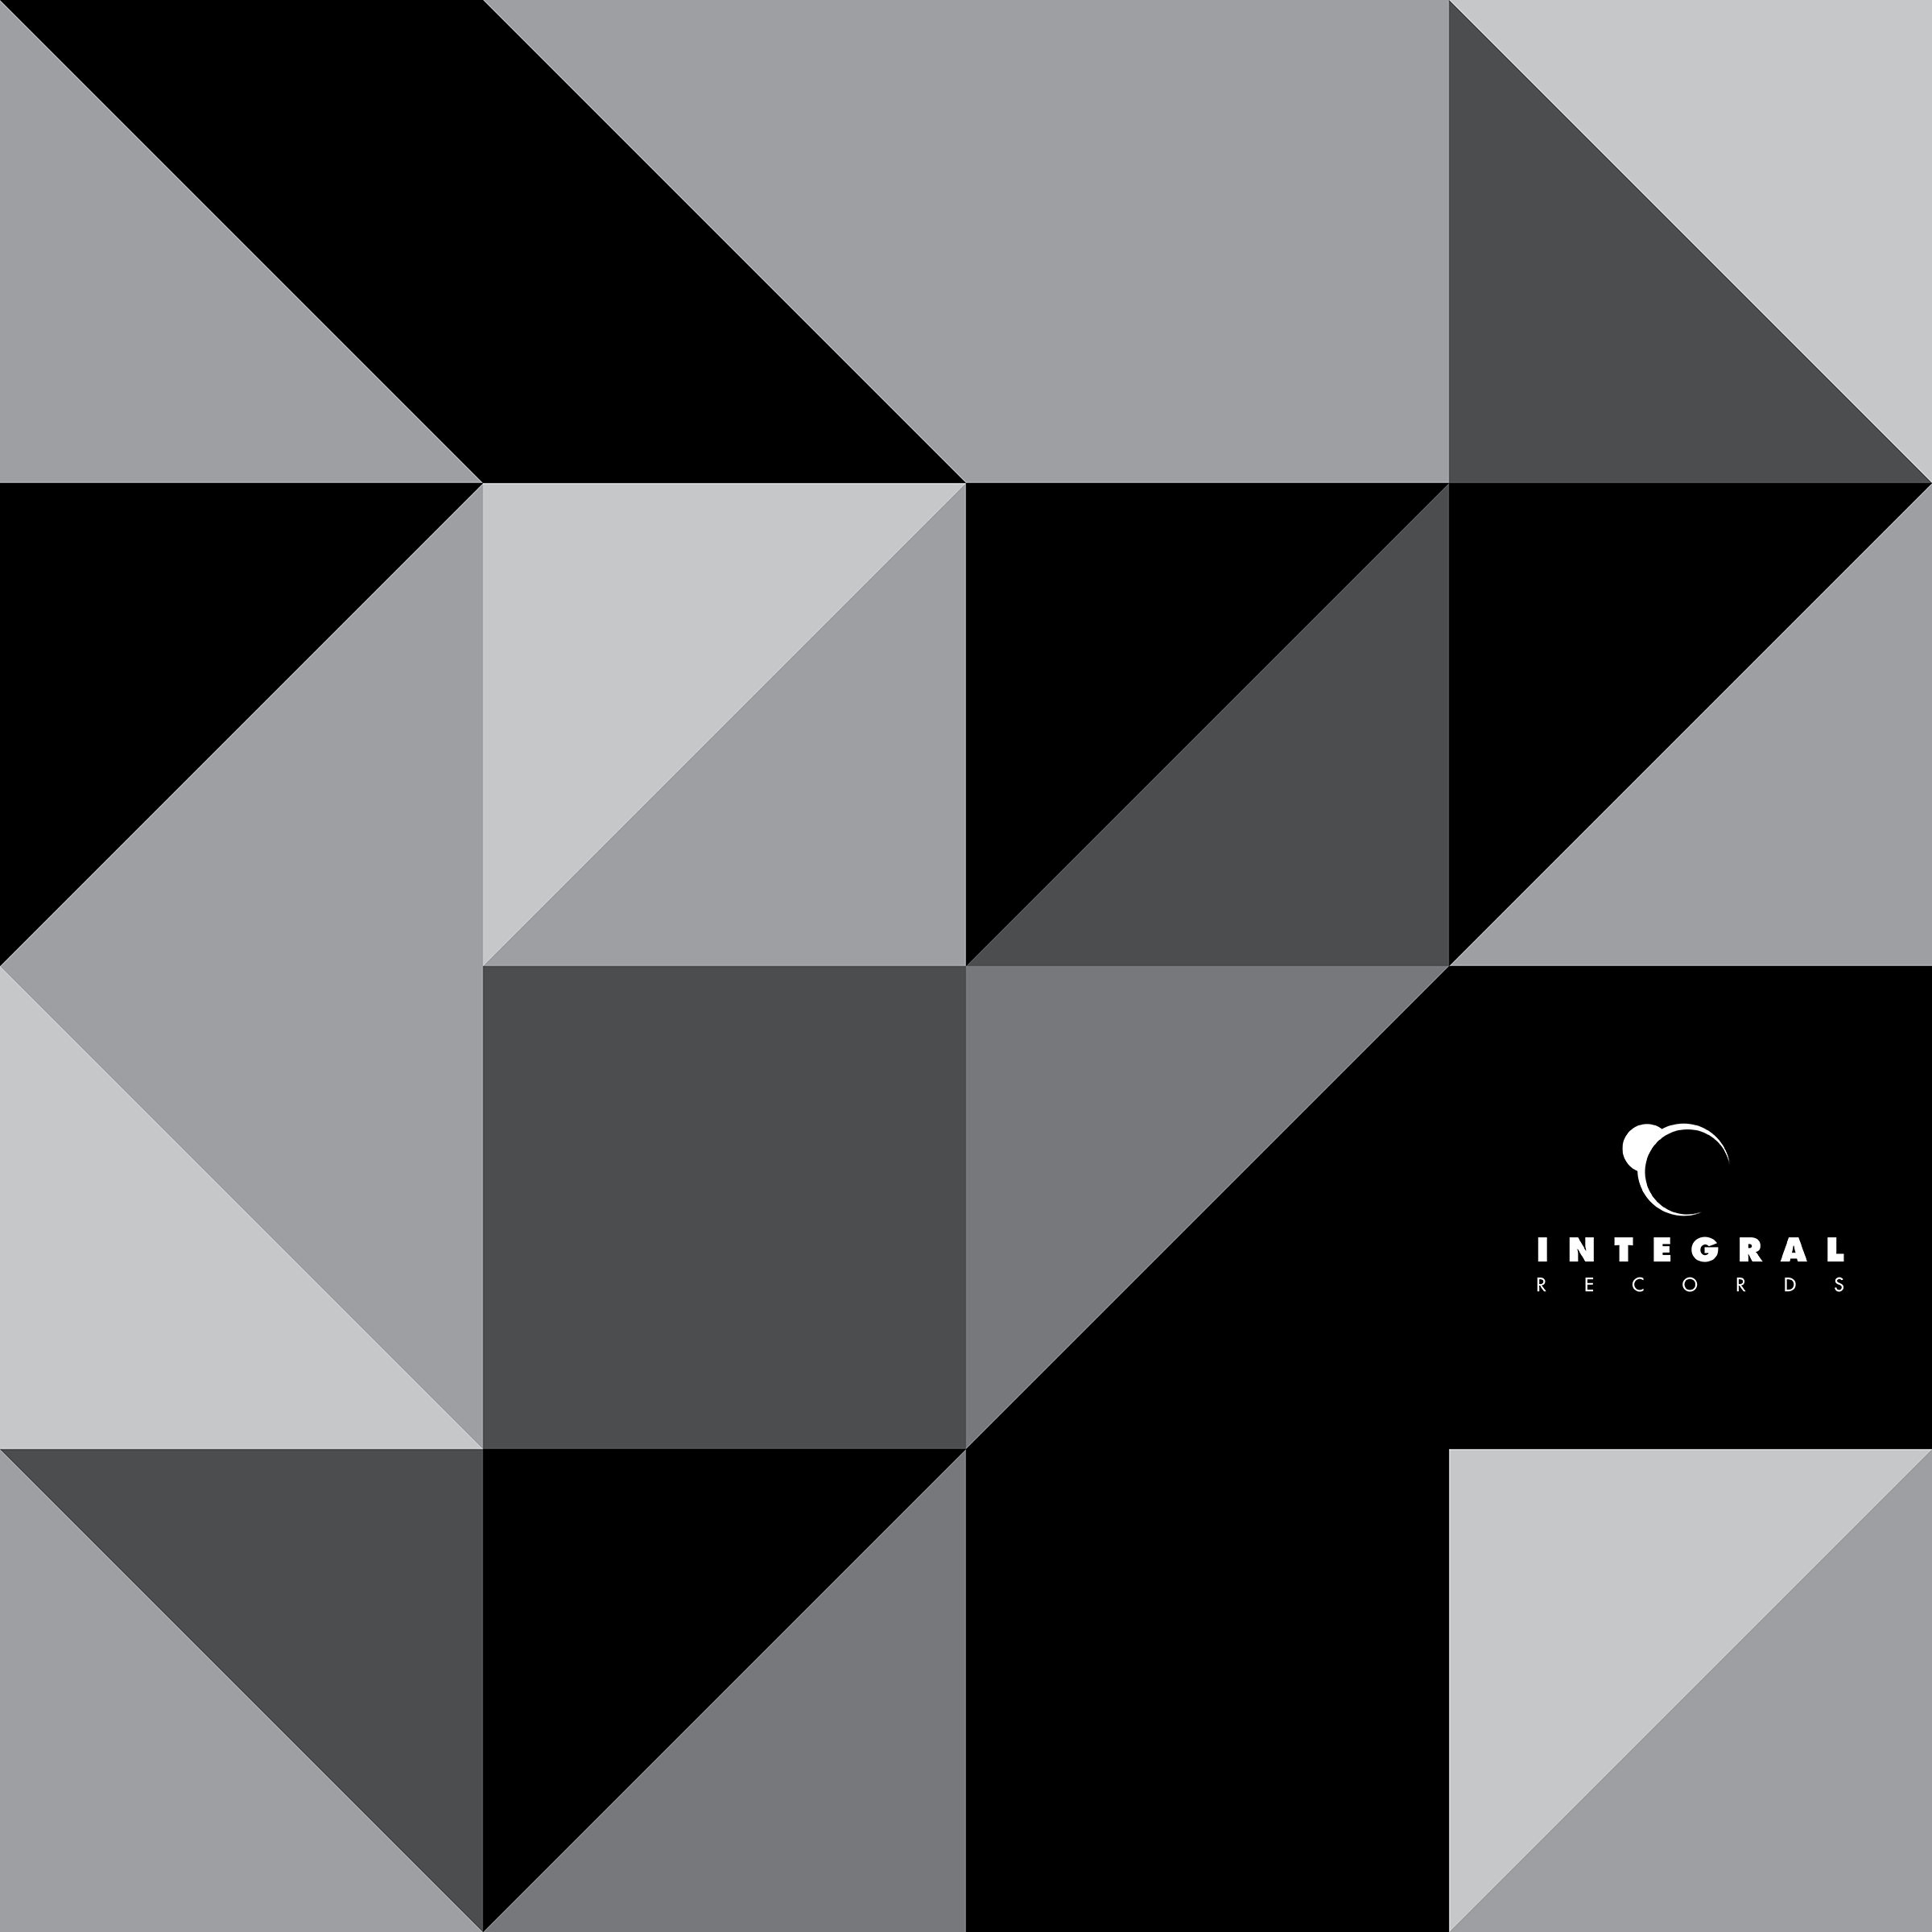 INT017 - DKay & Intoxicated - Thinner Edge / Shades